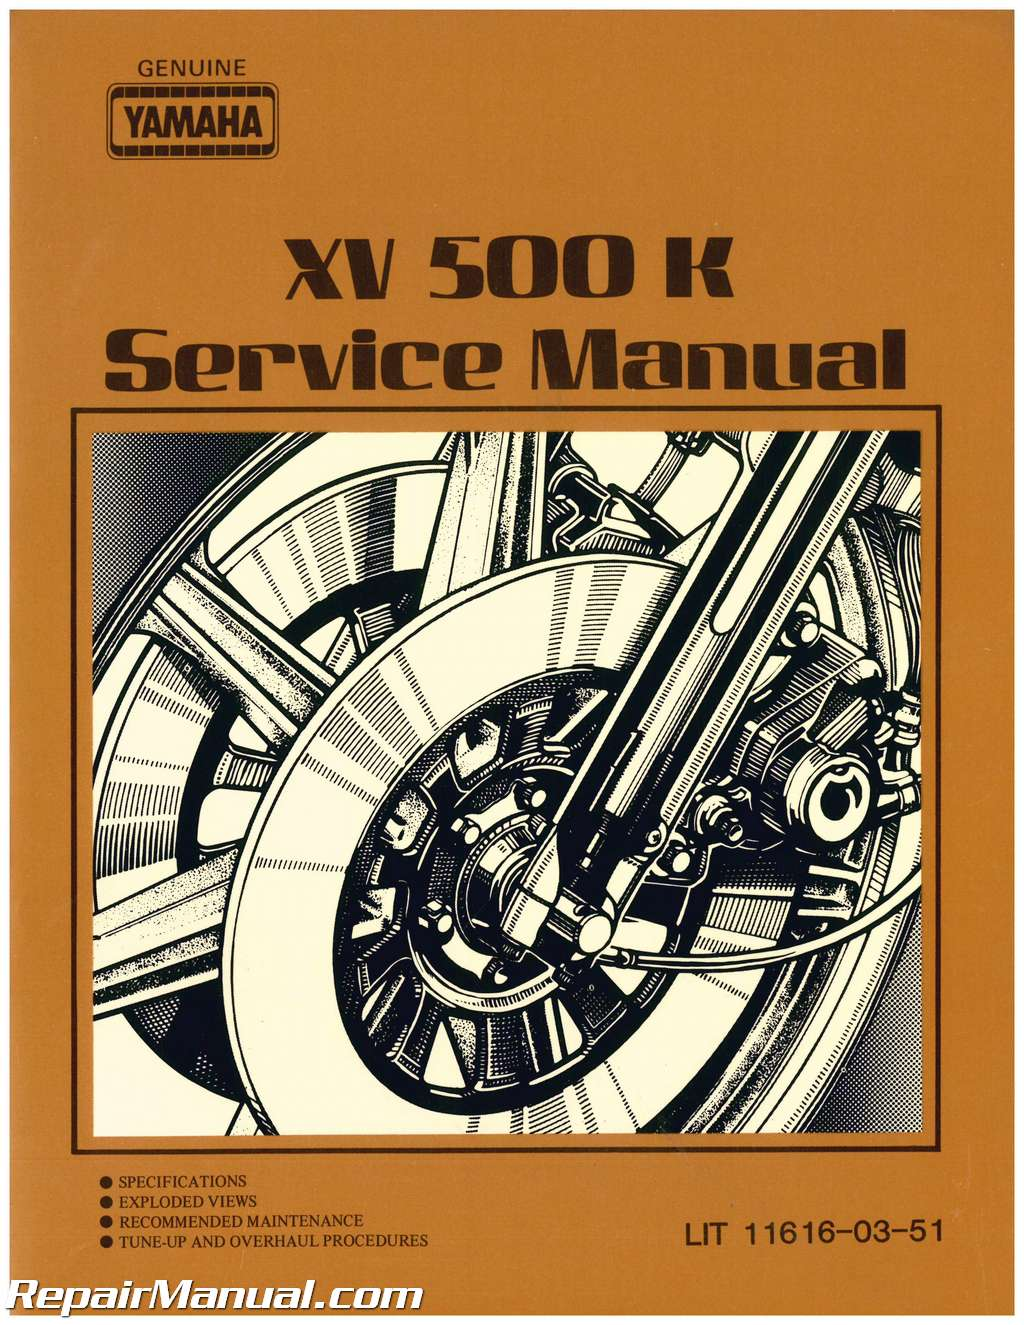 Yamaha Xv 500 Service Manual